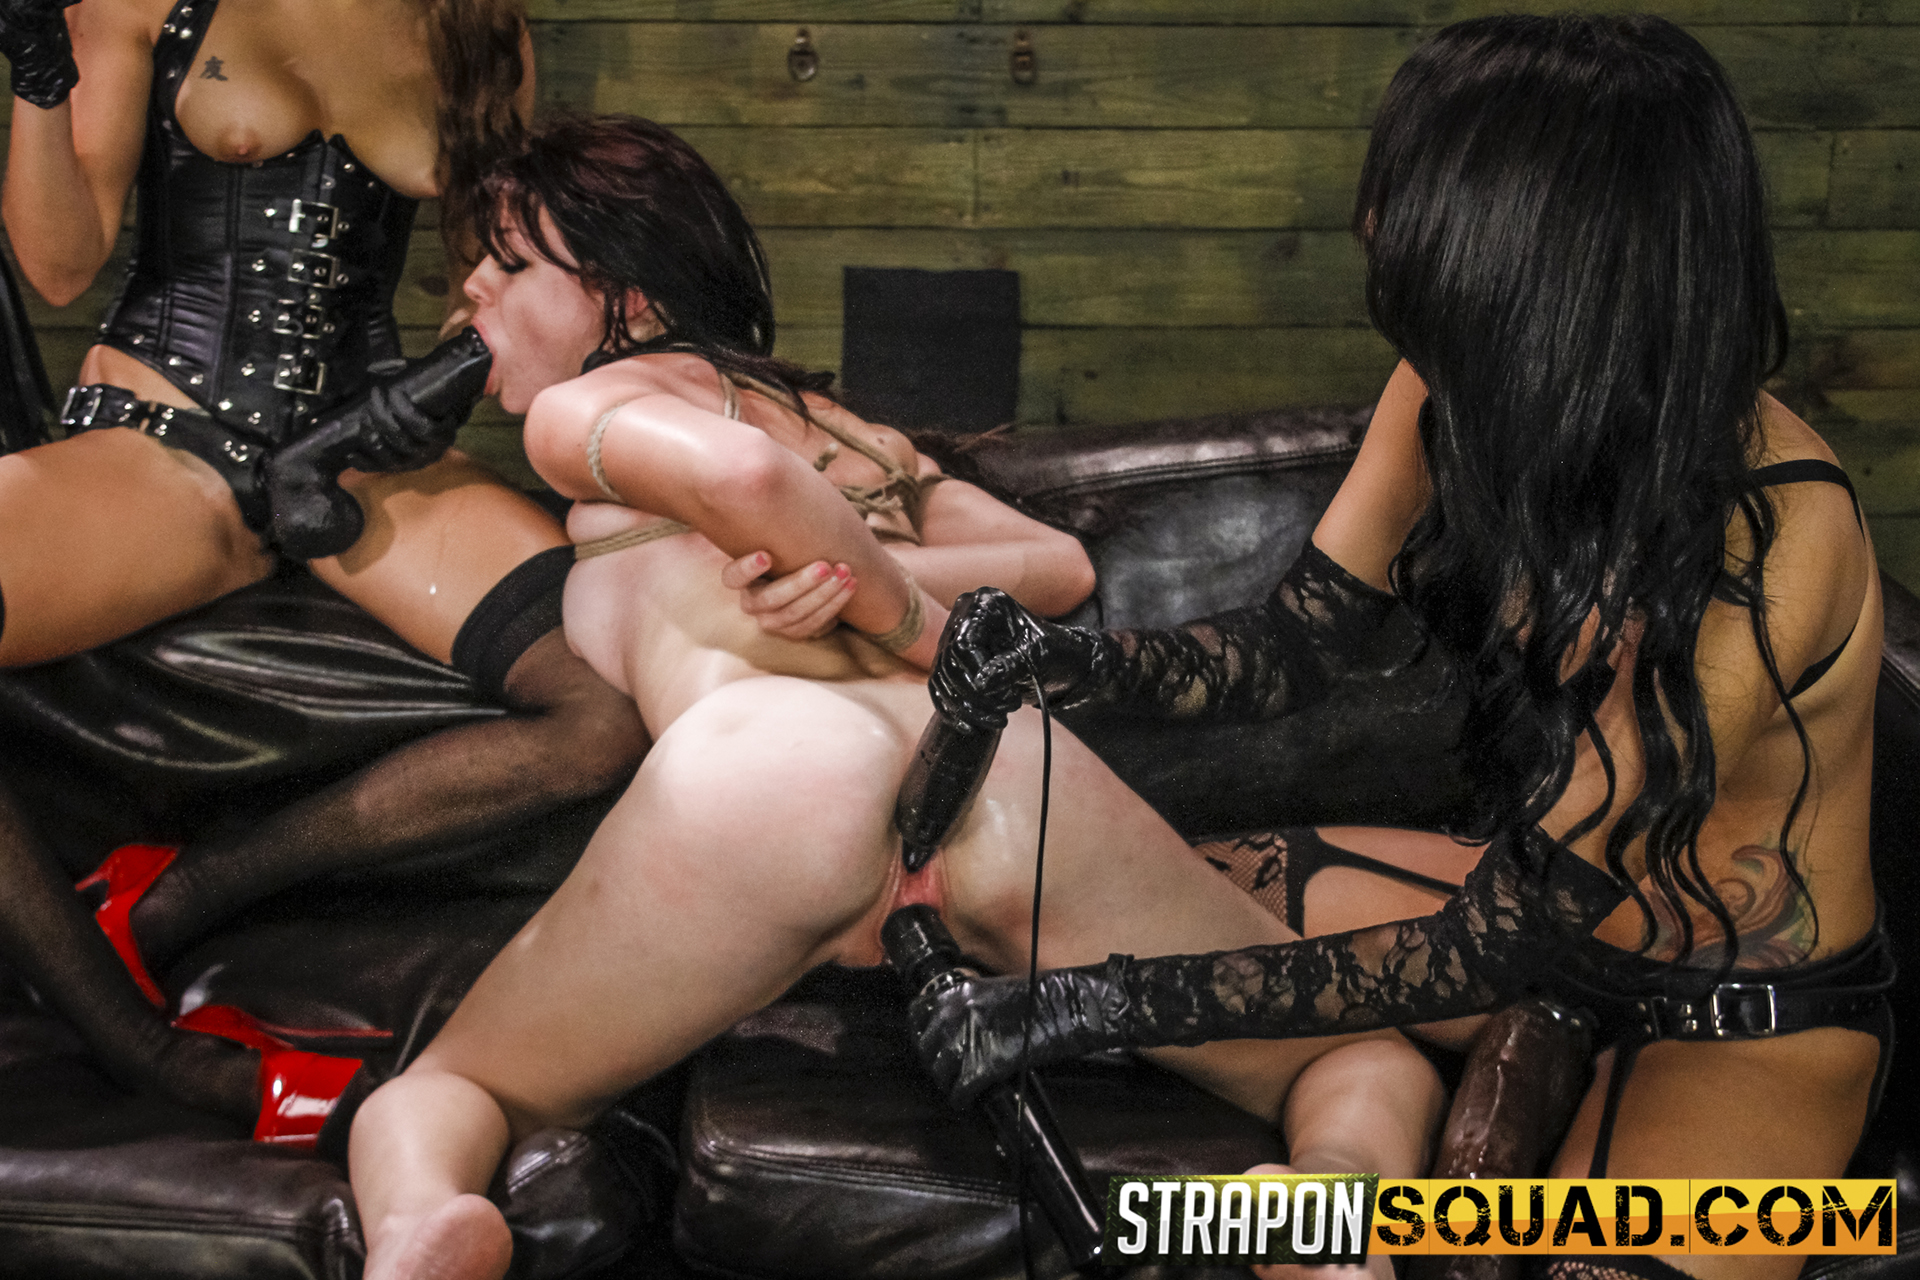 All Girl Supremacy & Sybian Saddle Three Way With Kaisey Dean, Marina Angel, Esmi Lee